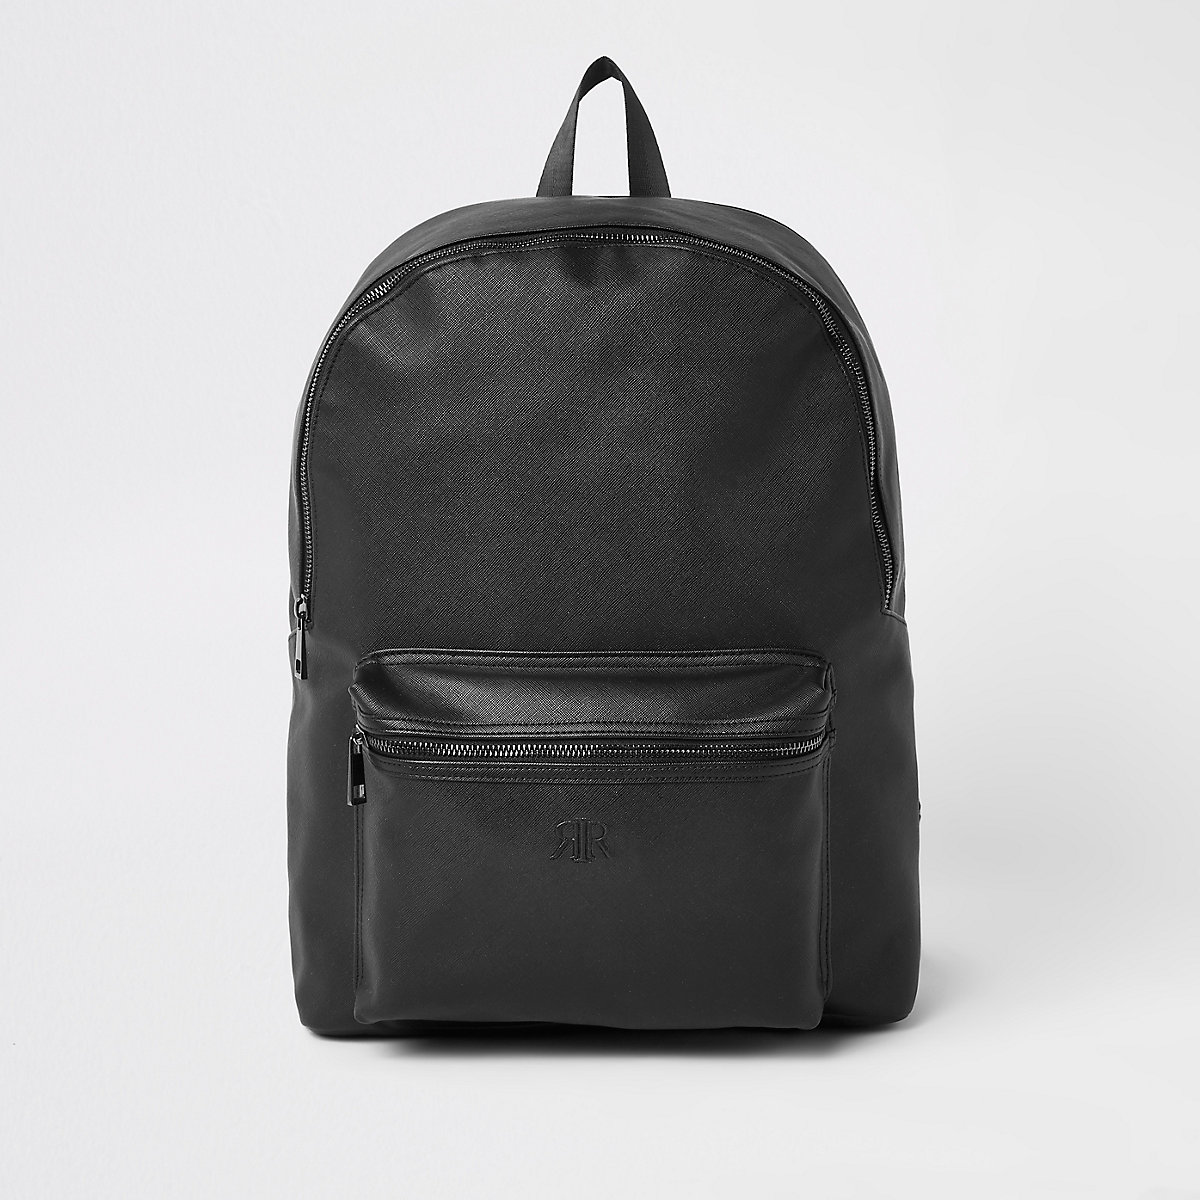 Black RI embossed backpack